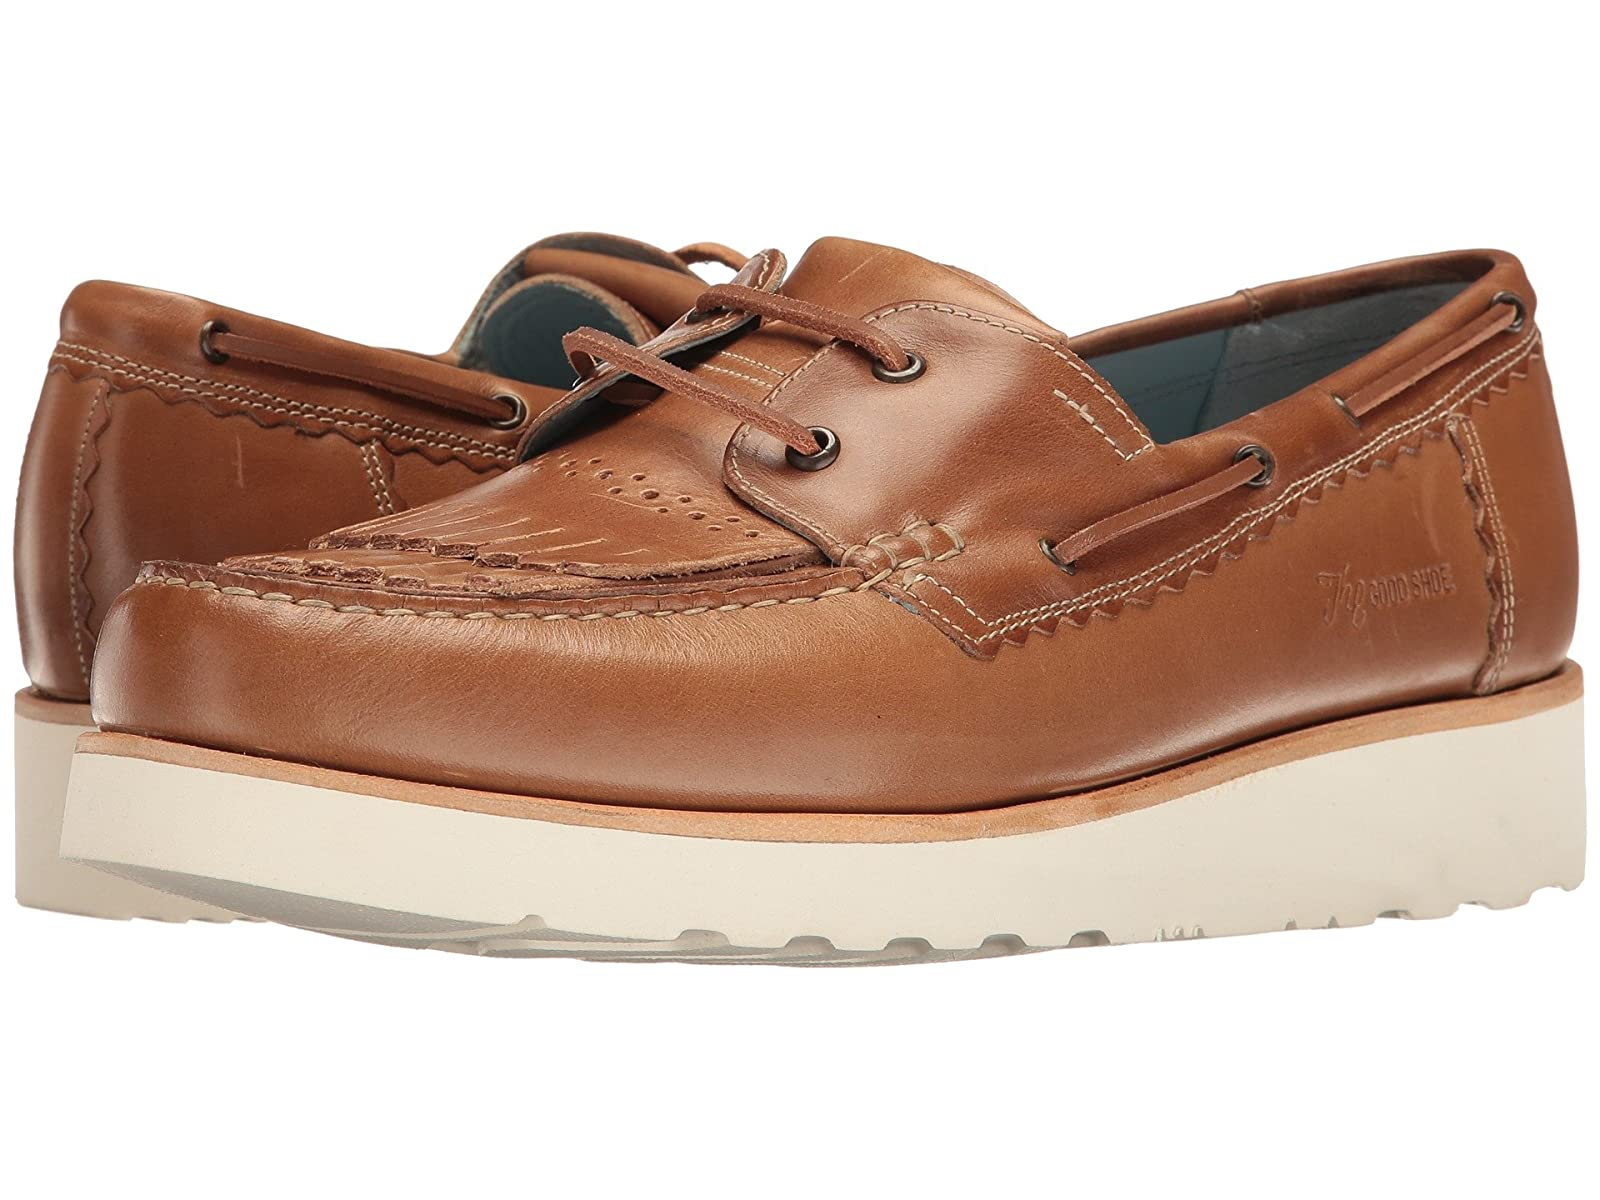 Grenson Stevie MoccasinCheap and distinctive eye-catching shoes